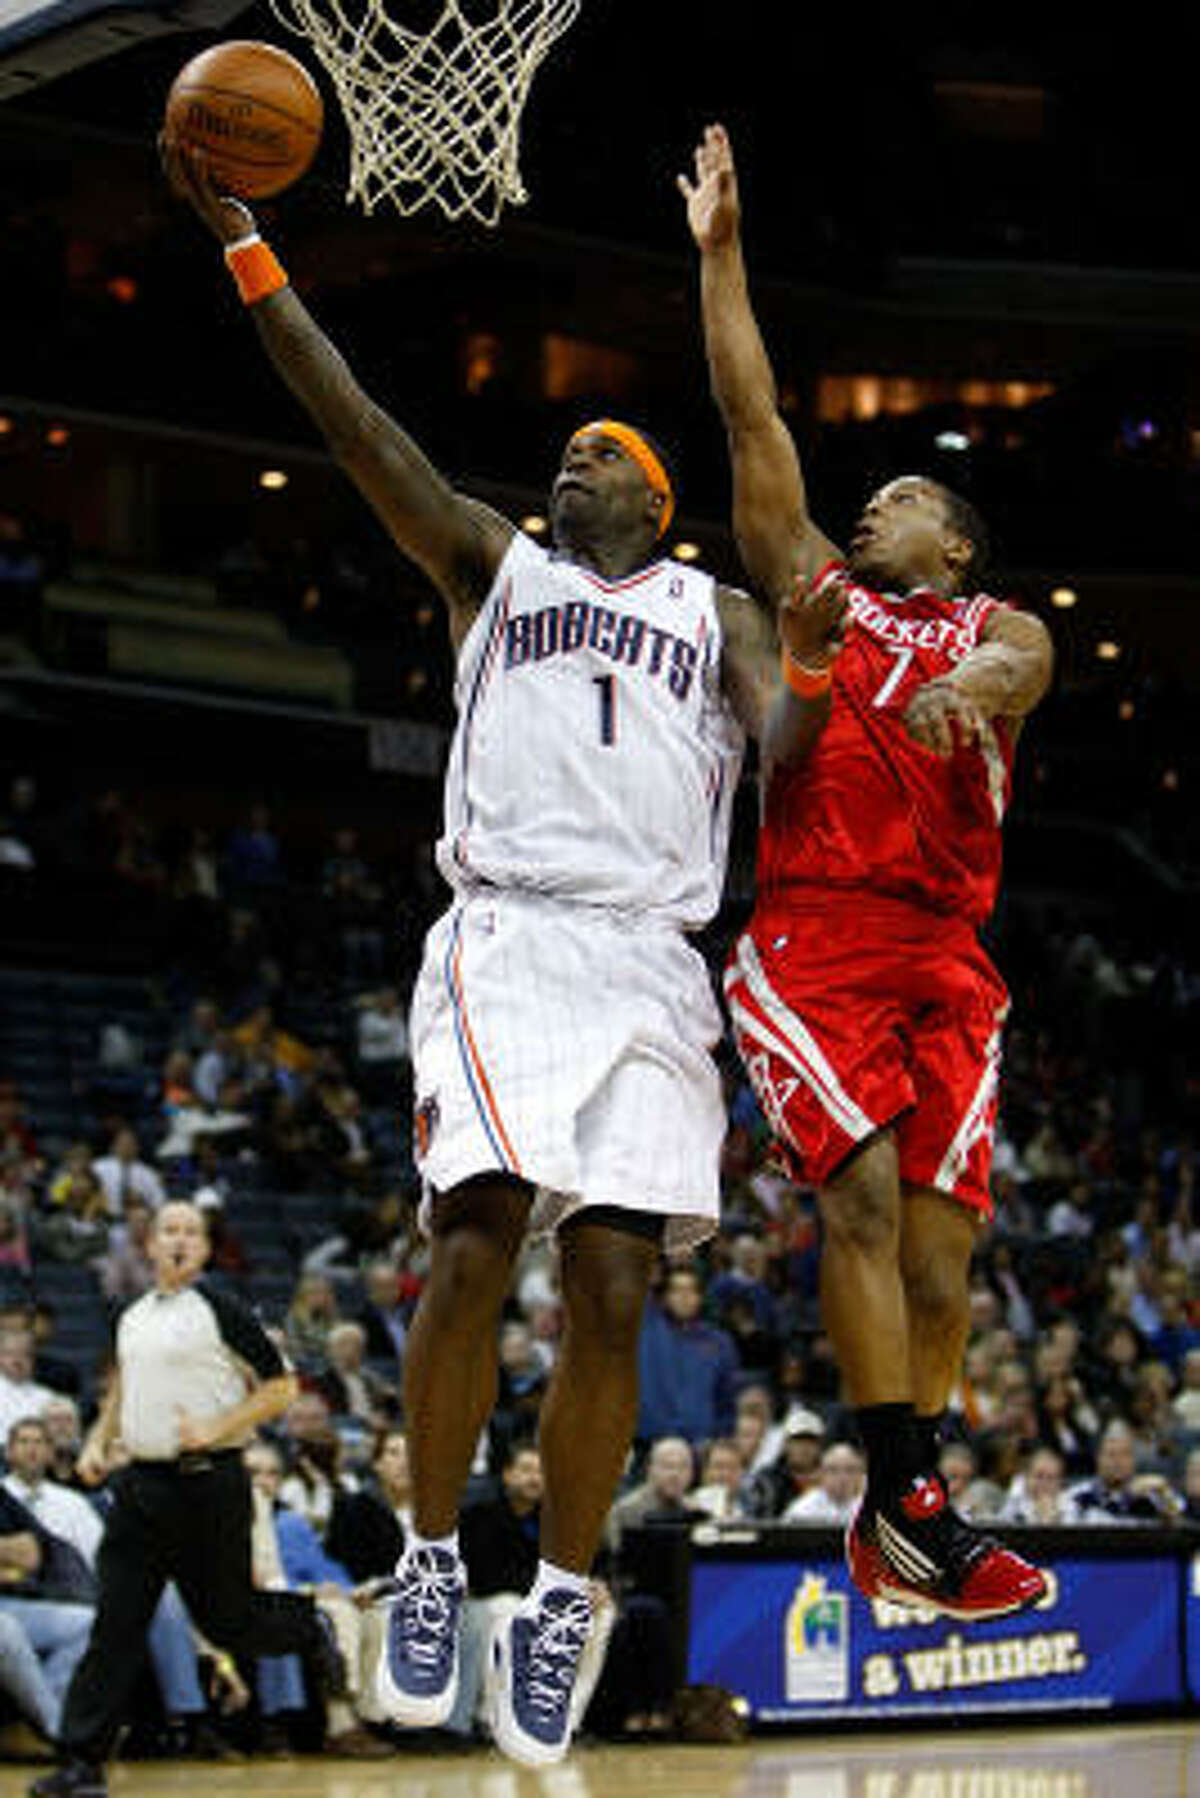 Rockets guard Kyle Lowry tries to block the Bobcats' Stephen Jackson in the first half.